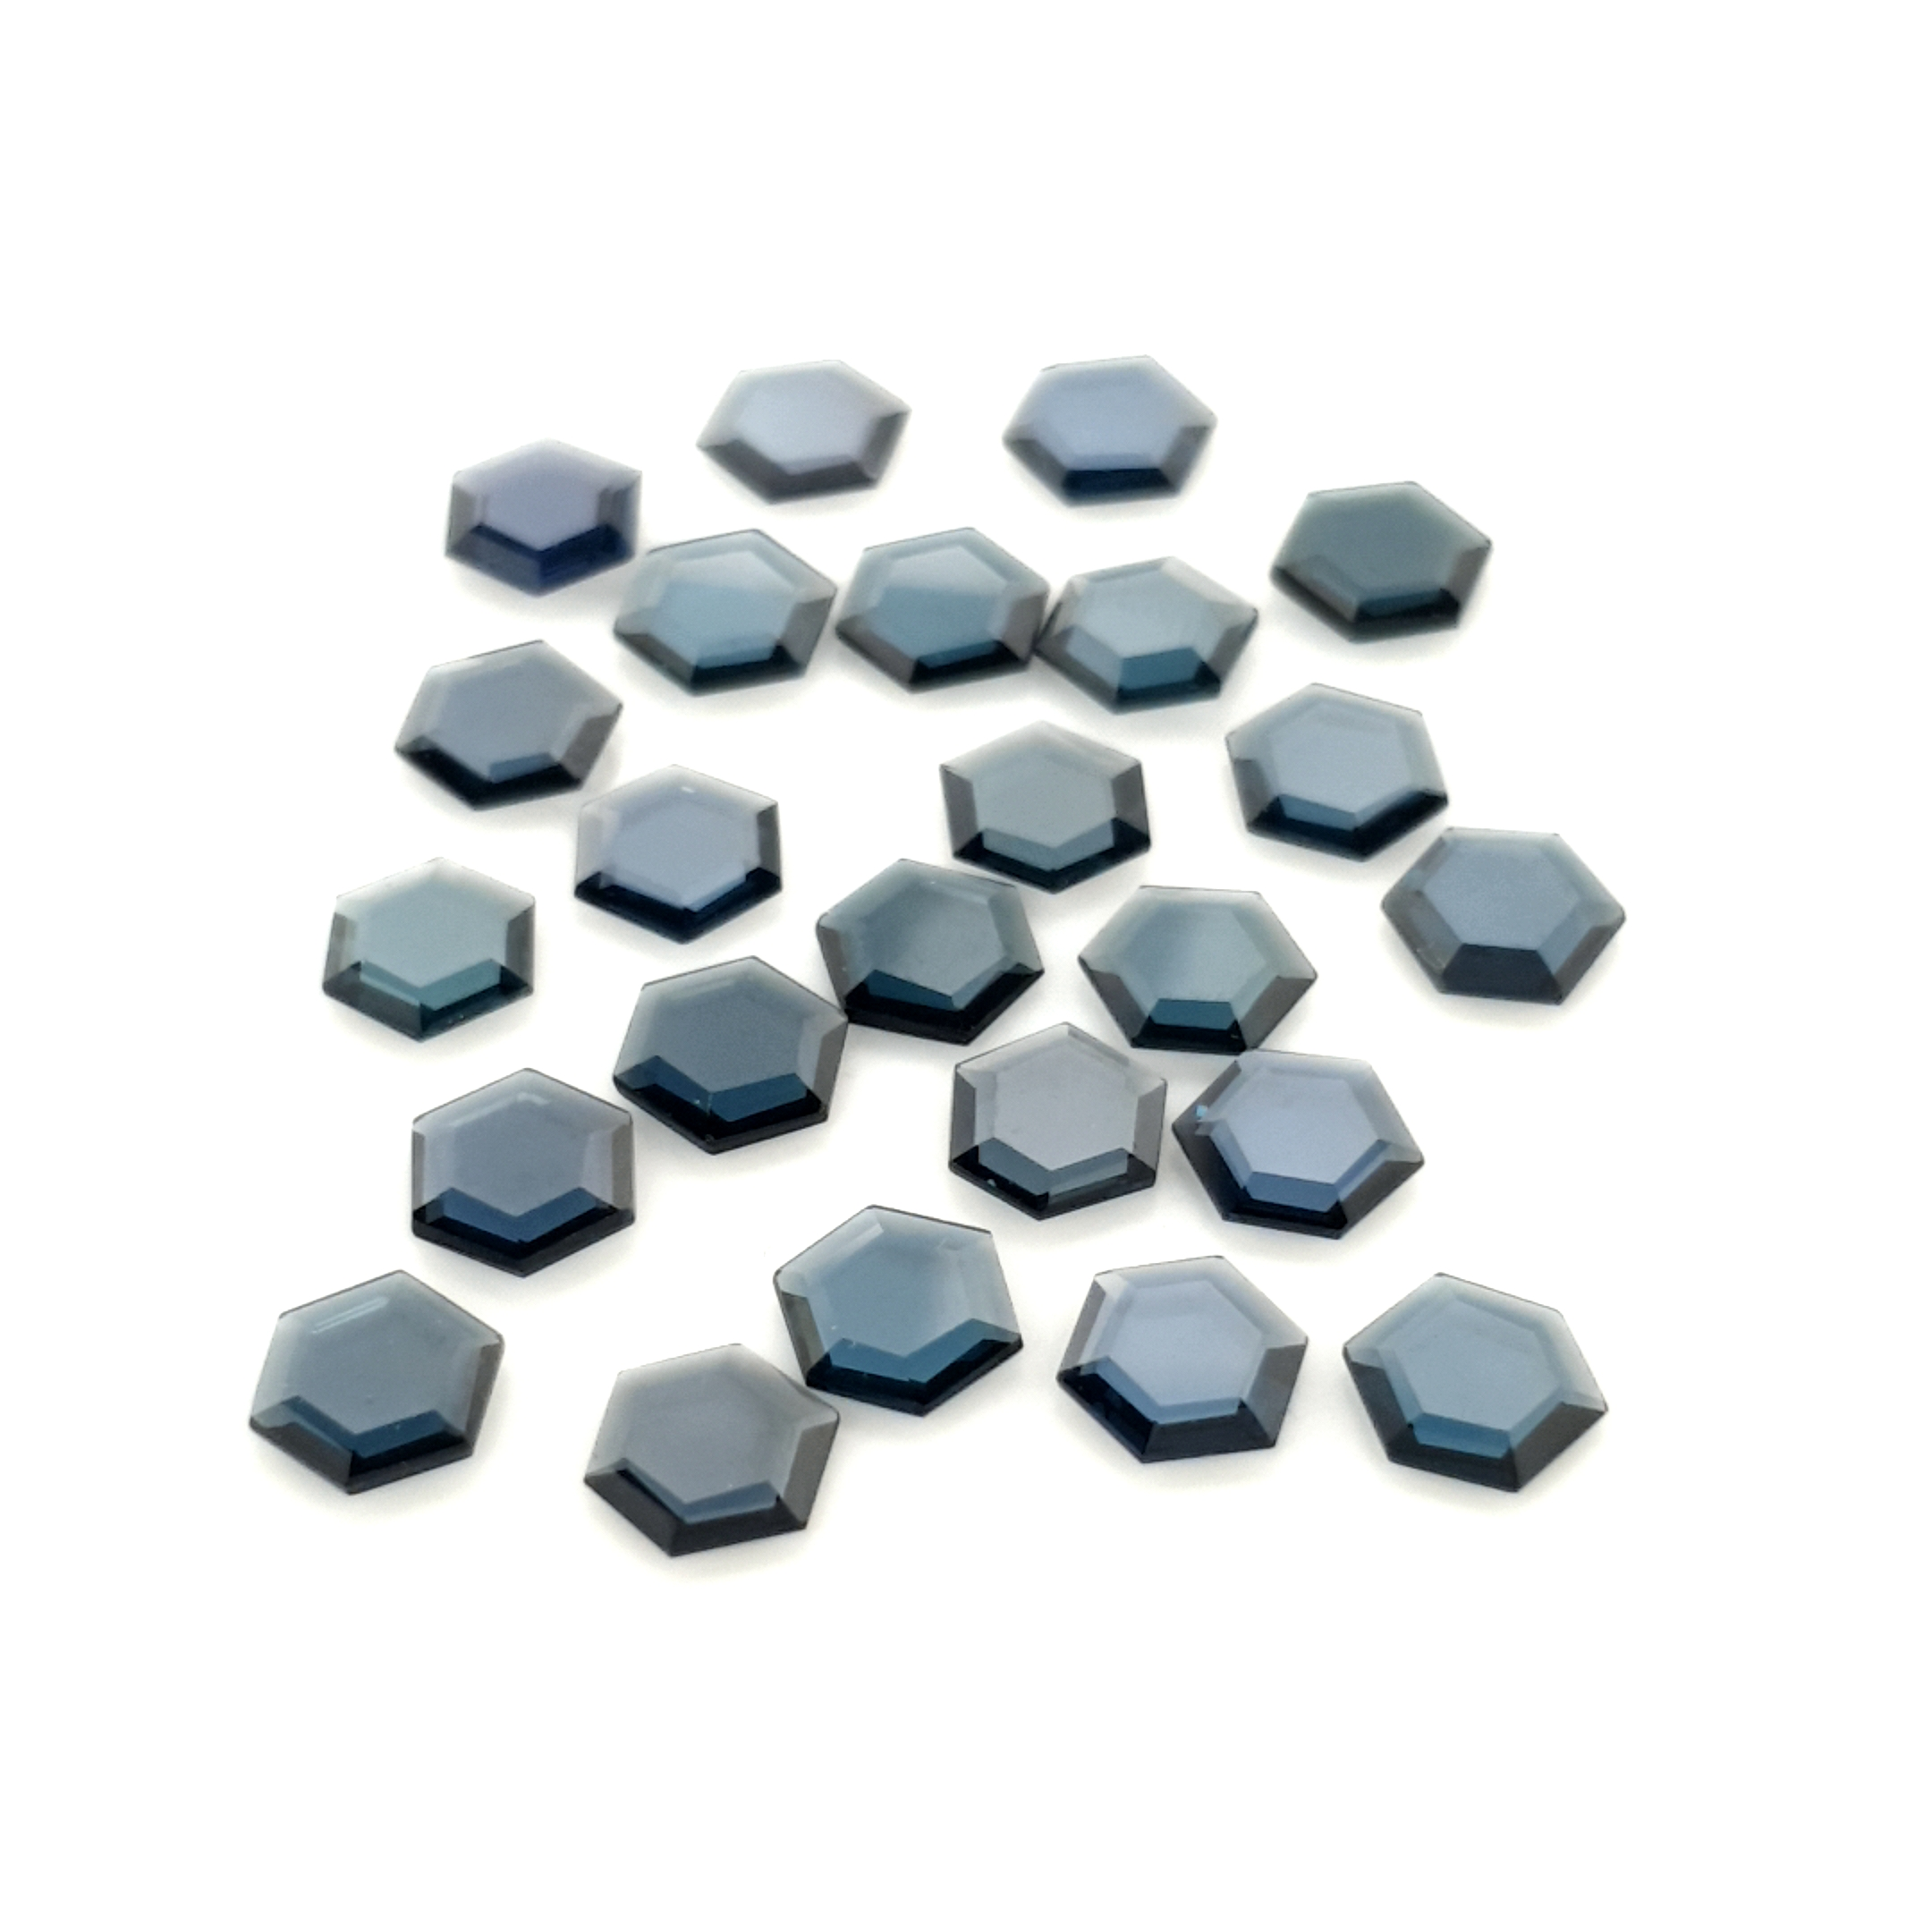 5,5mm Hexagone Blue Spinel SNJ19C46 ClaudiaHamann__2021-02-16-23-36-21